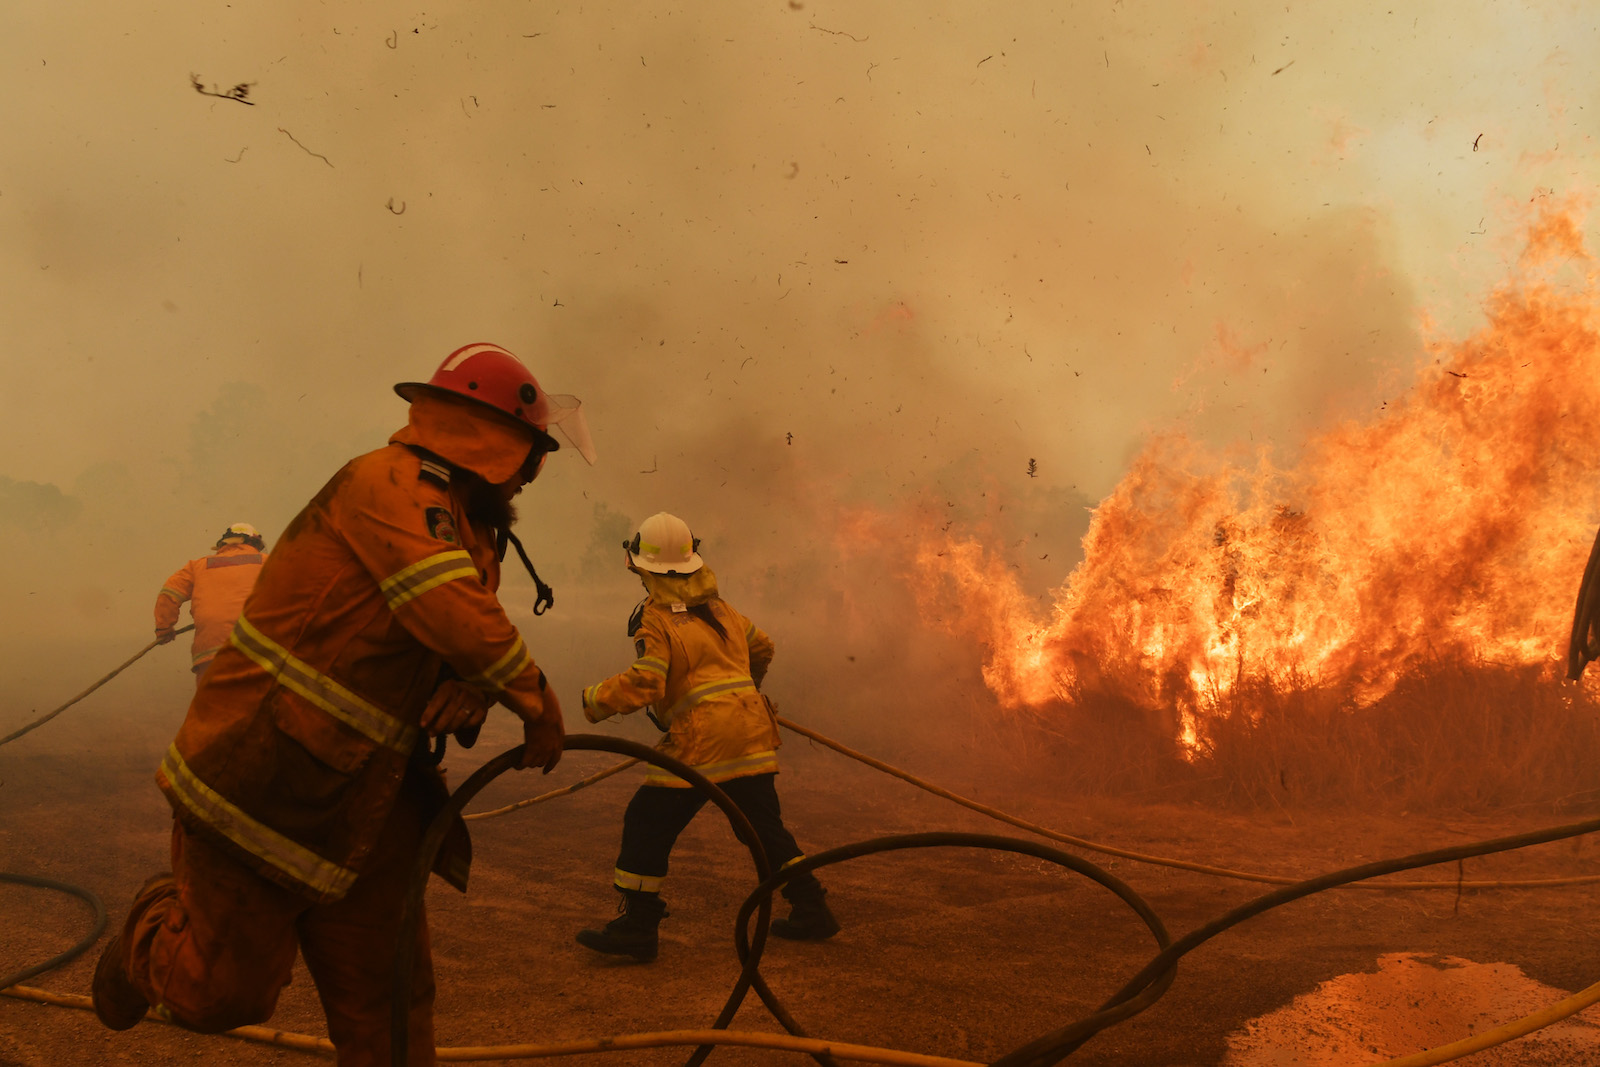 firefighters in full protective gear lift hoses as a fire rages behind them